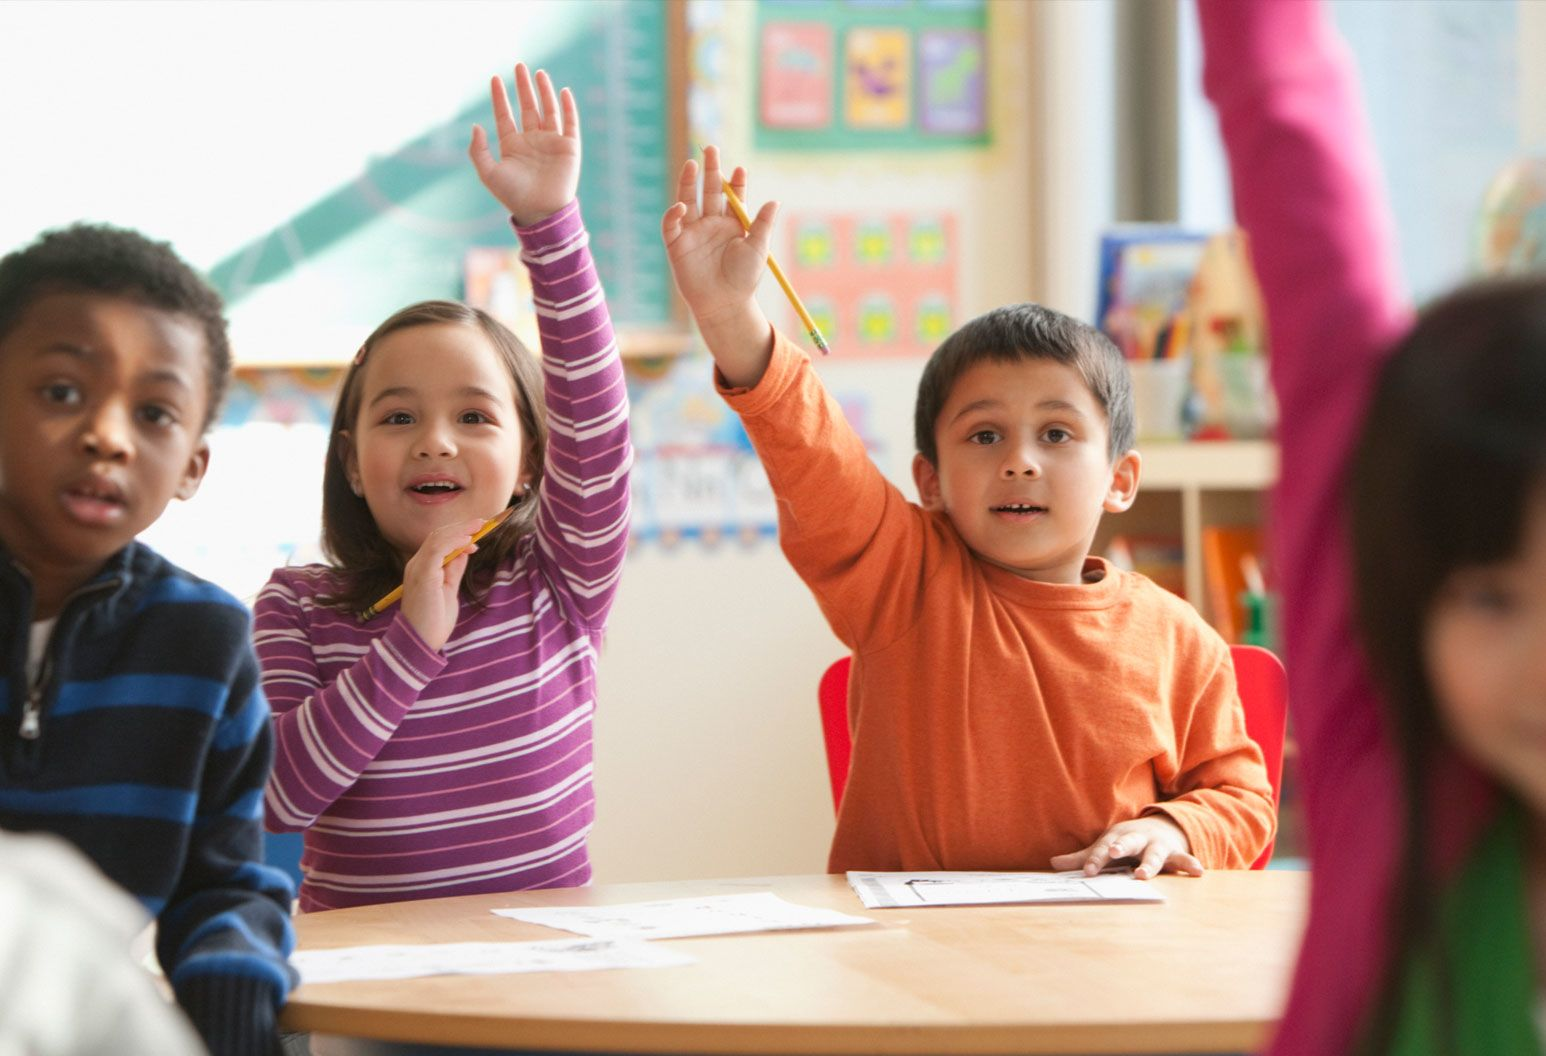 Classroom of young children, raising their hands, happily participating.